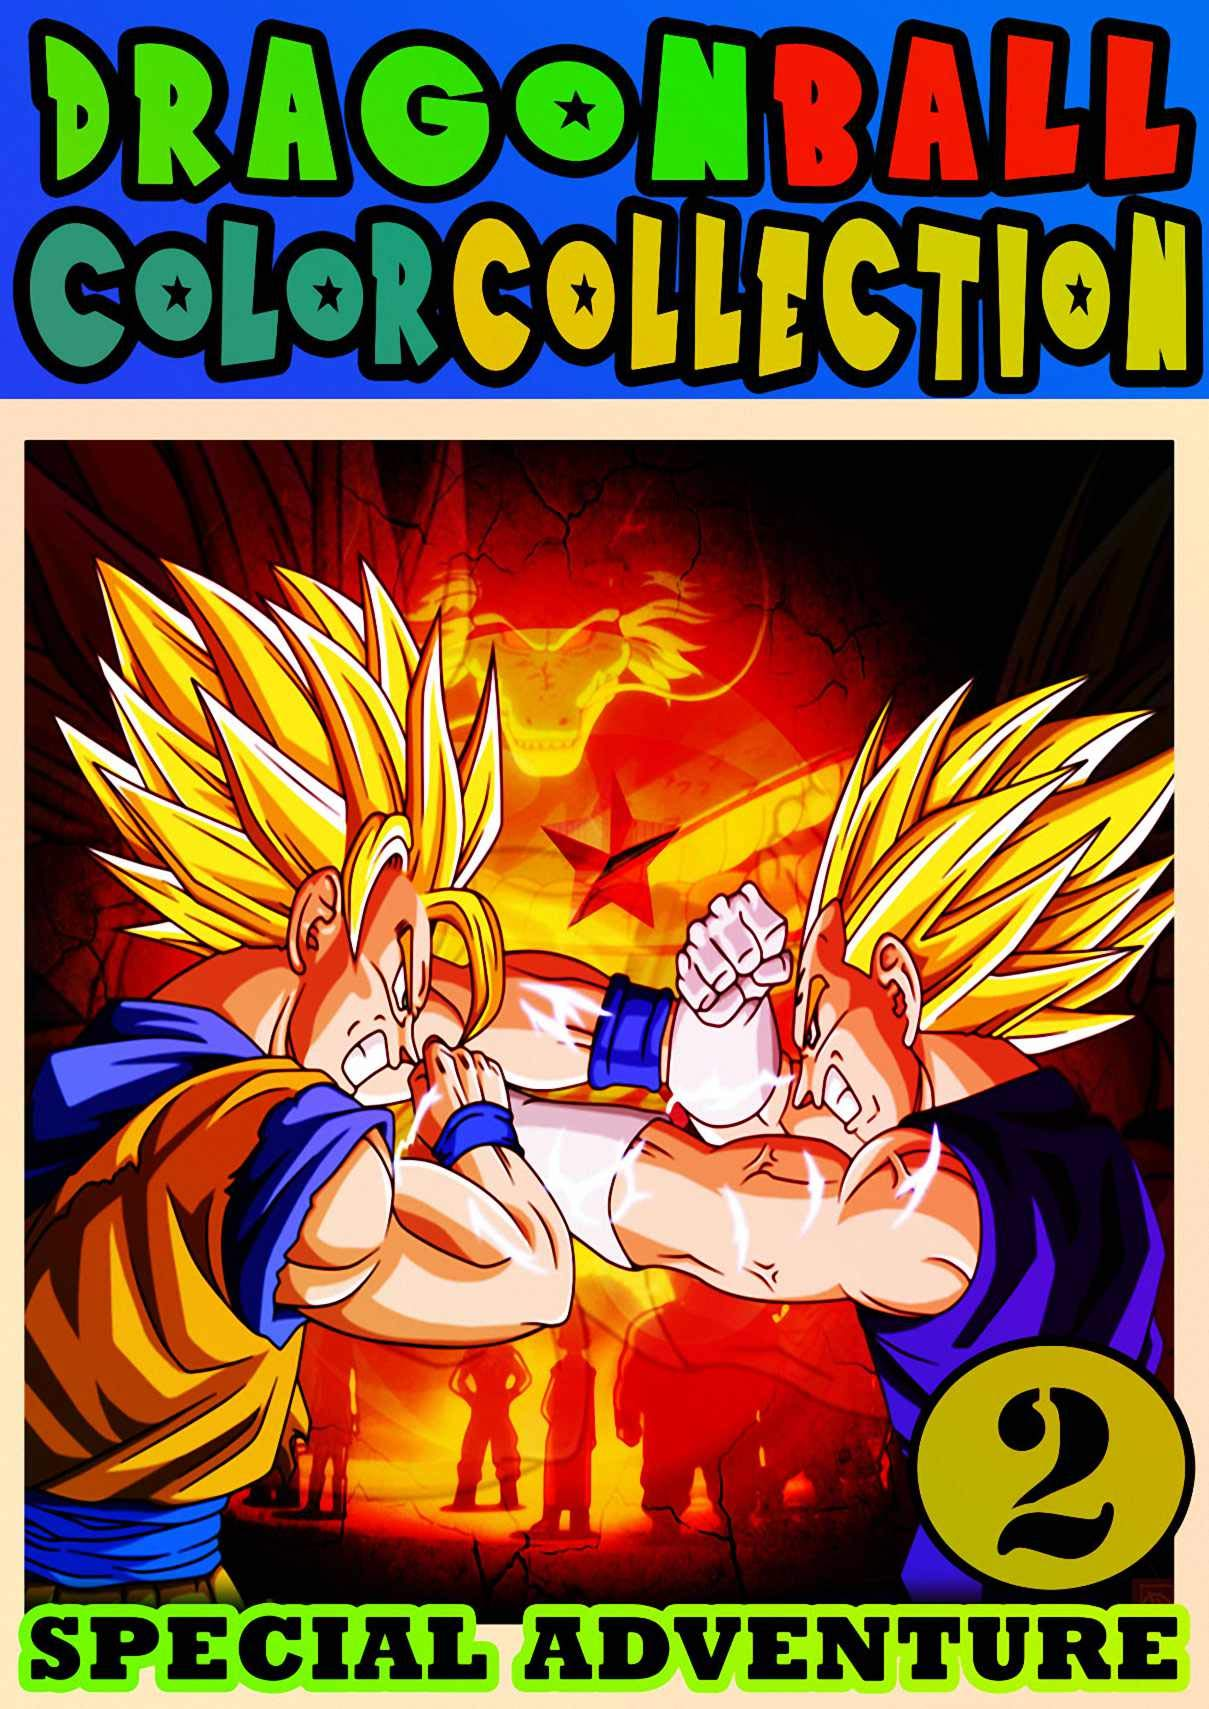 Full Color DragonBall Special: Collection Book 2 Action Shonen Manga For Teenagers , Fan Dragon Full Color Ball Great Graphic Novel